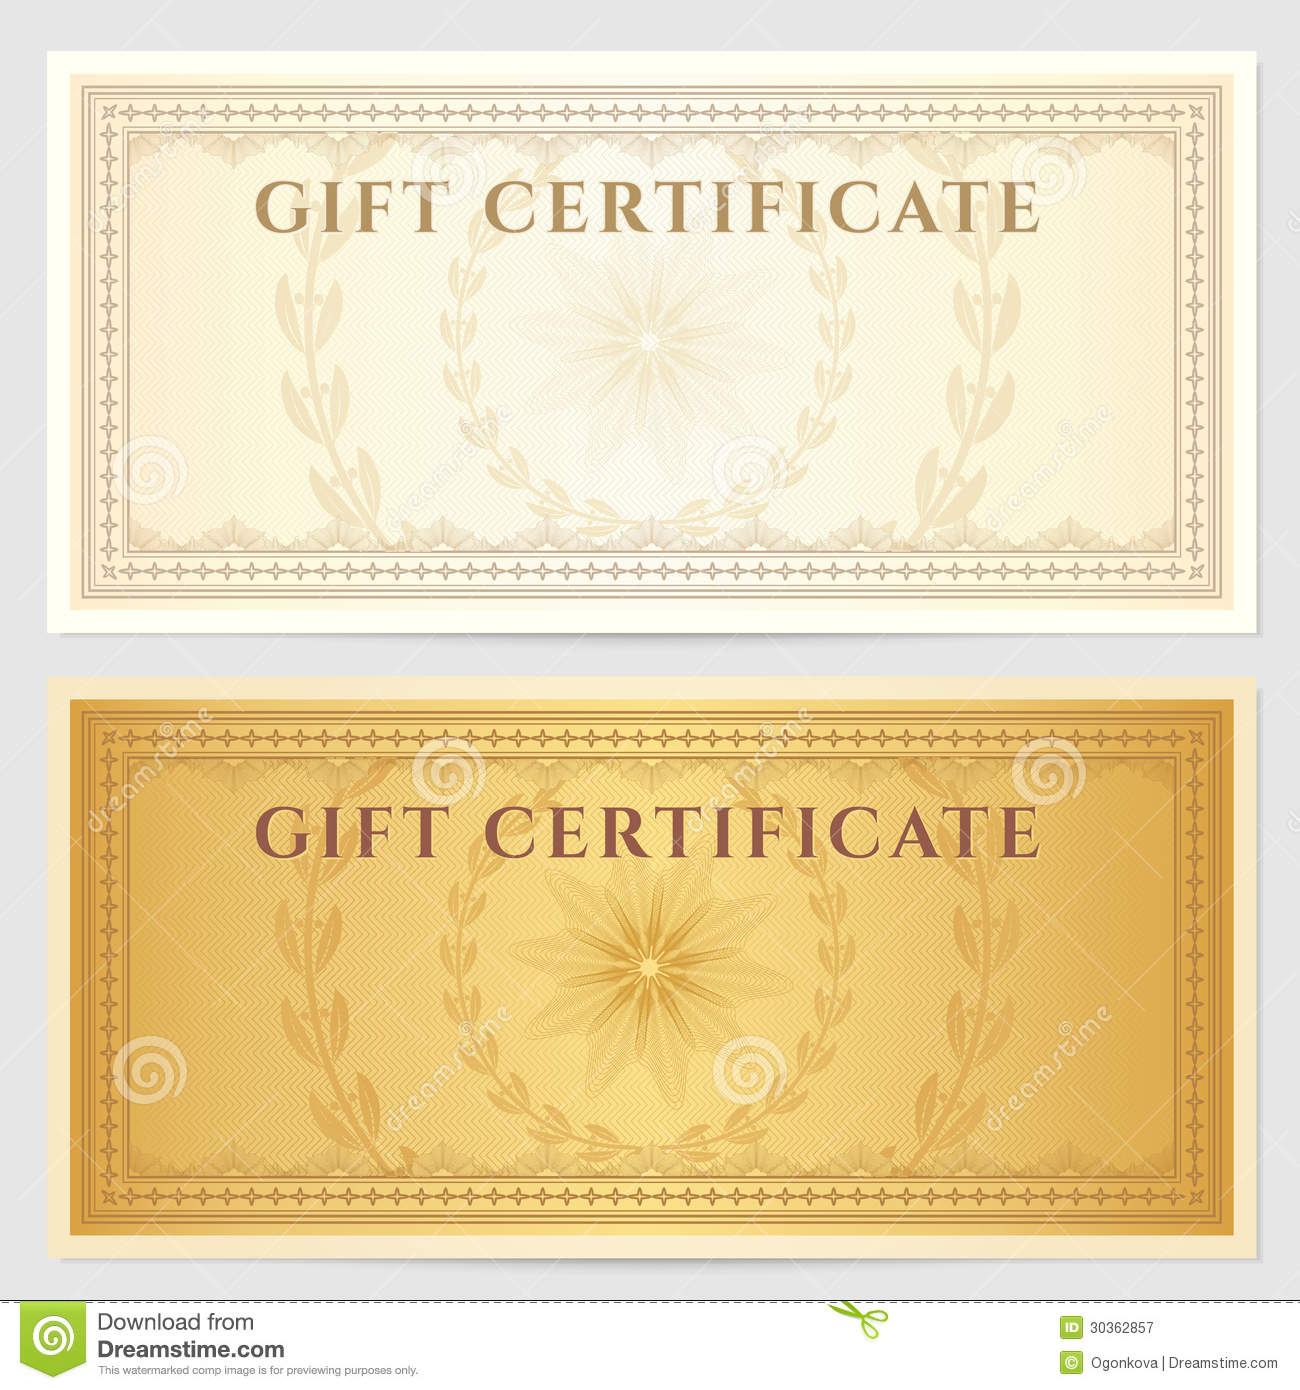 Vintage voucher coupon template with border stock vector vintage voucher coupon template with border royalty free stock photo yadclub Image collections